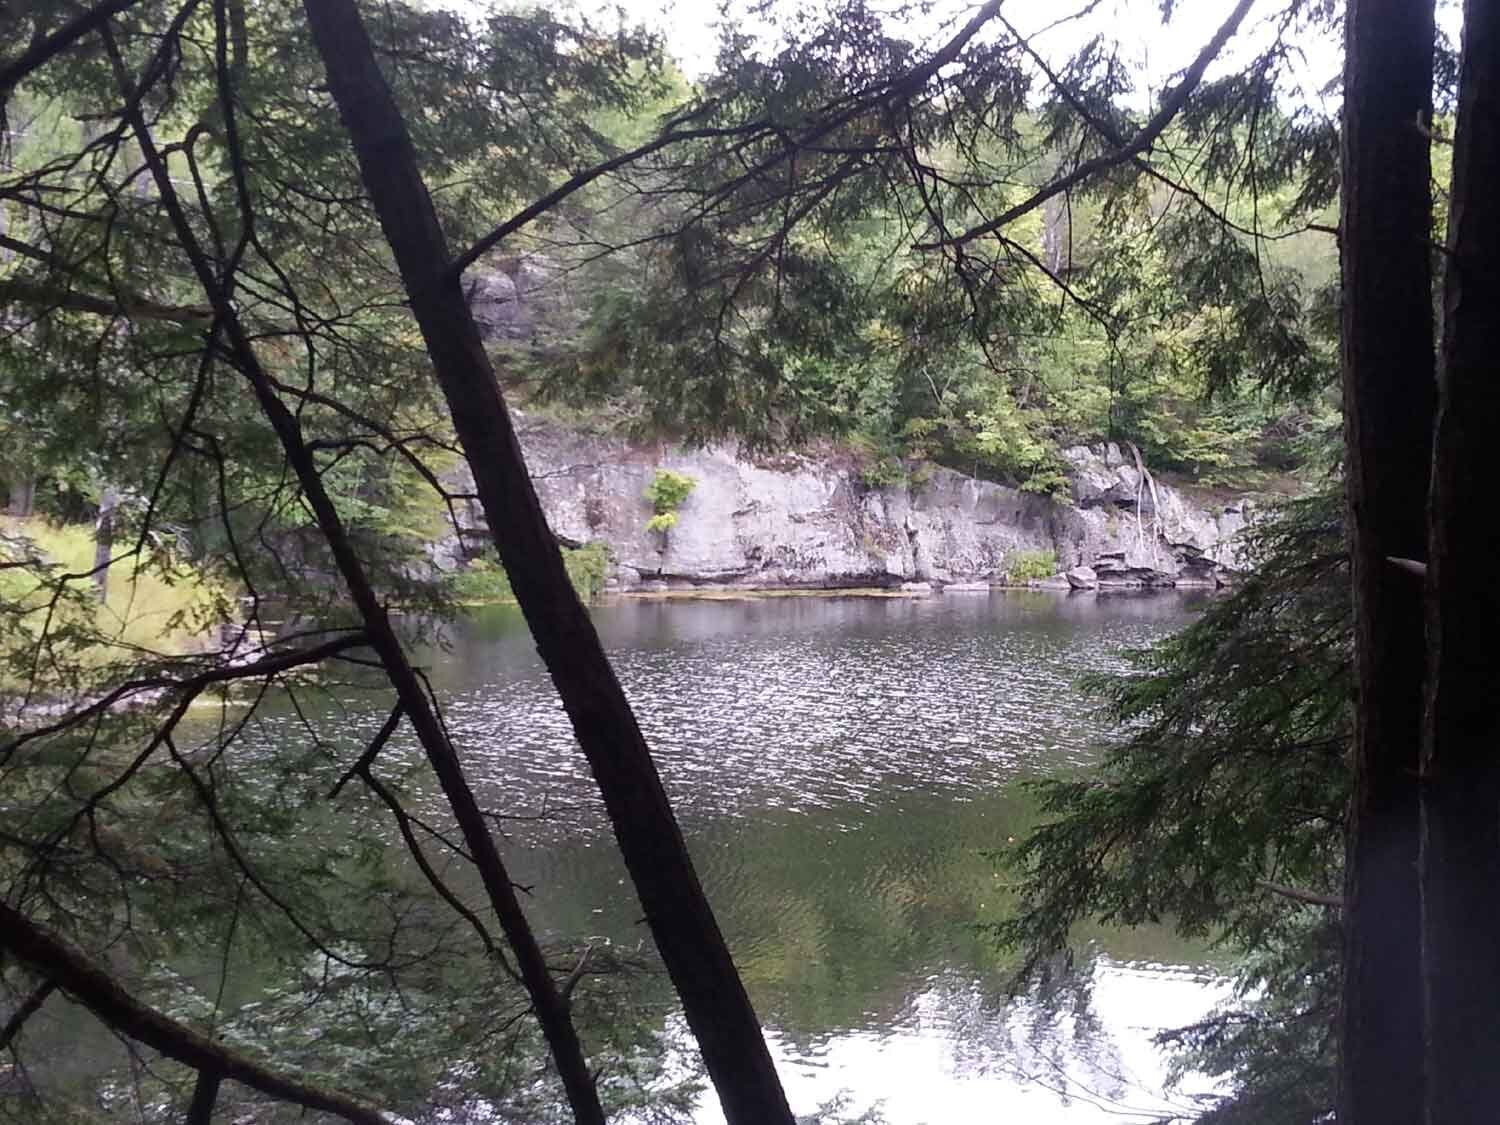 Ontario Cottage - The Canadian Shield